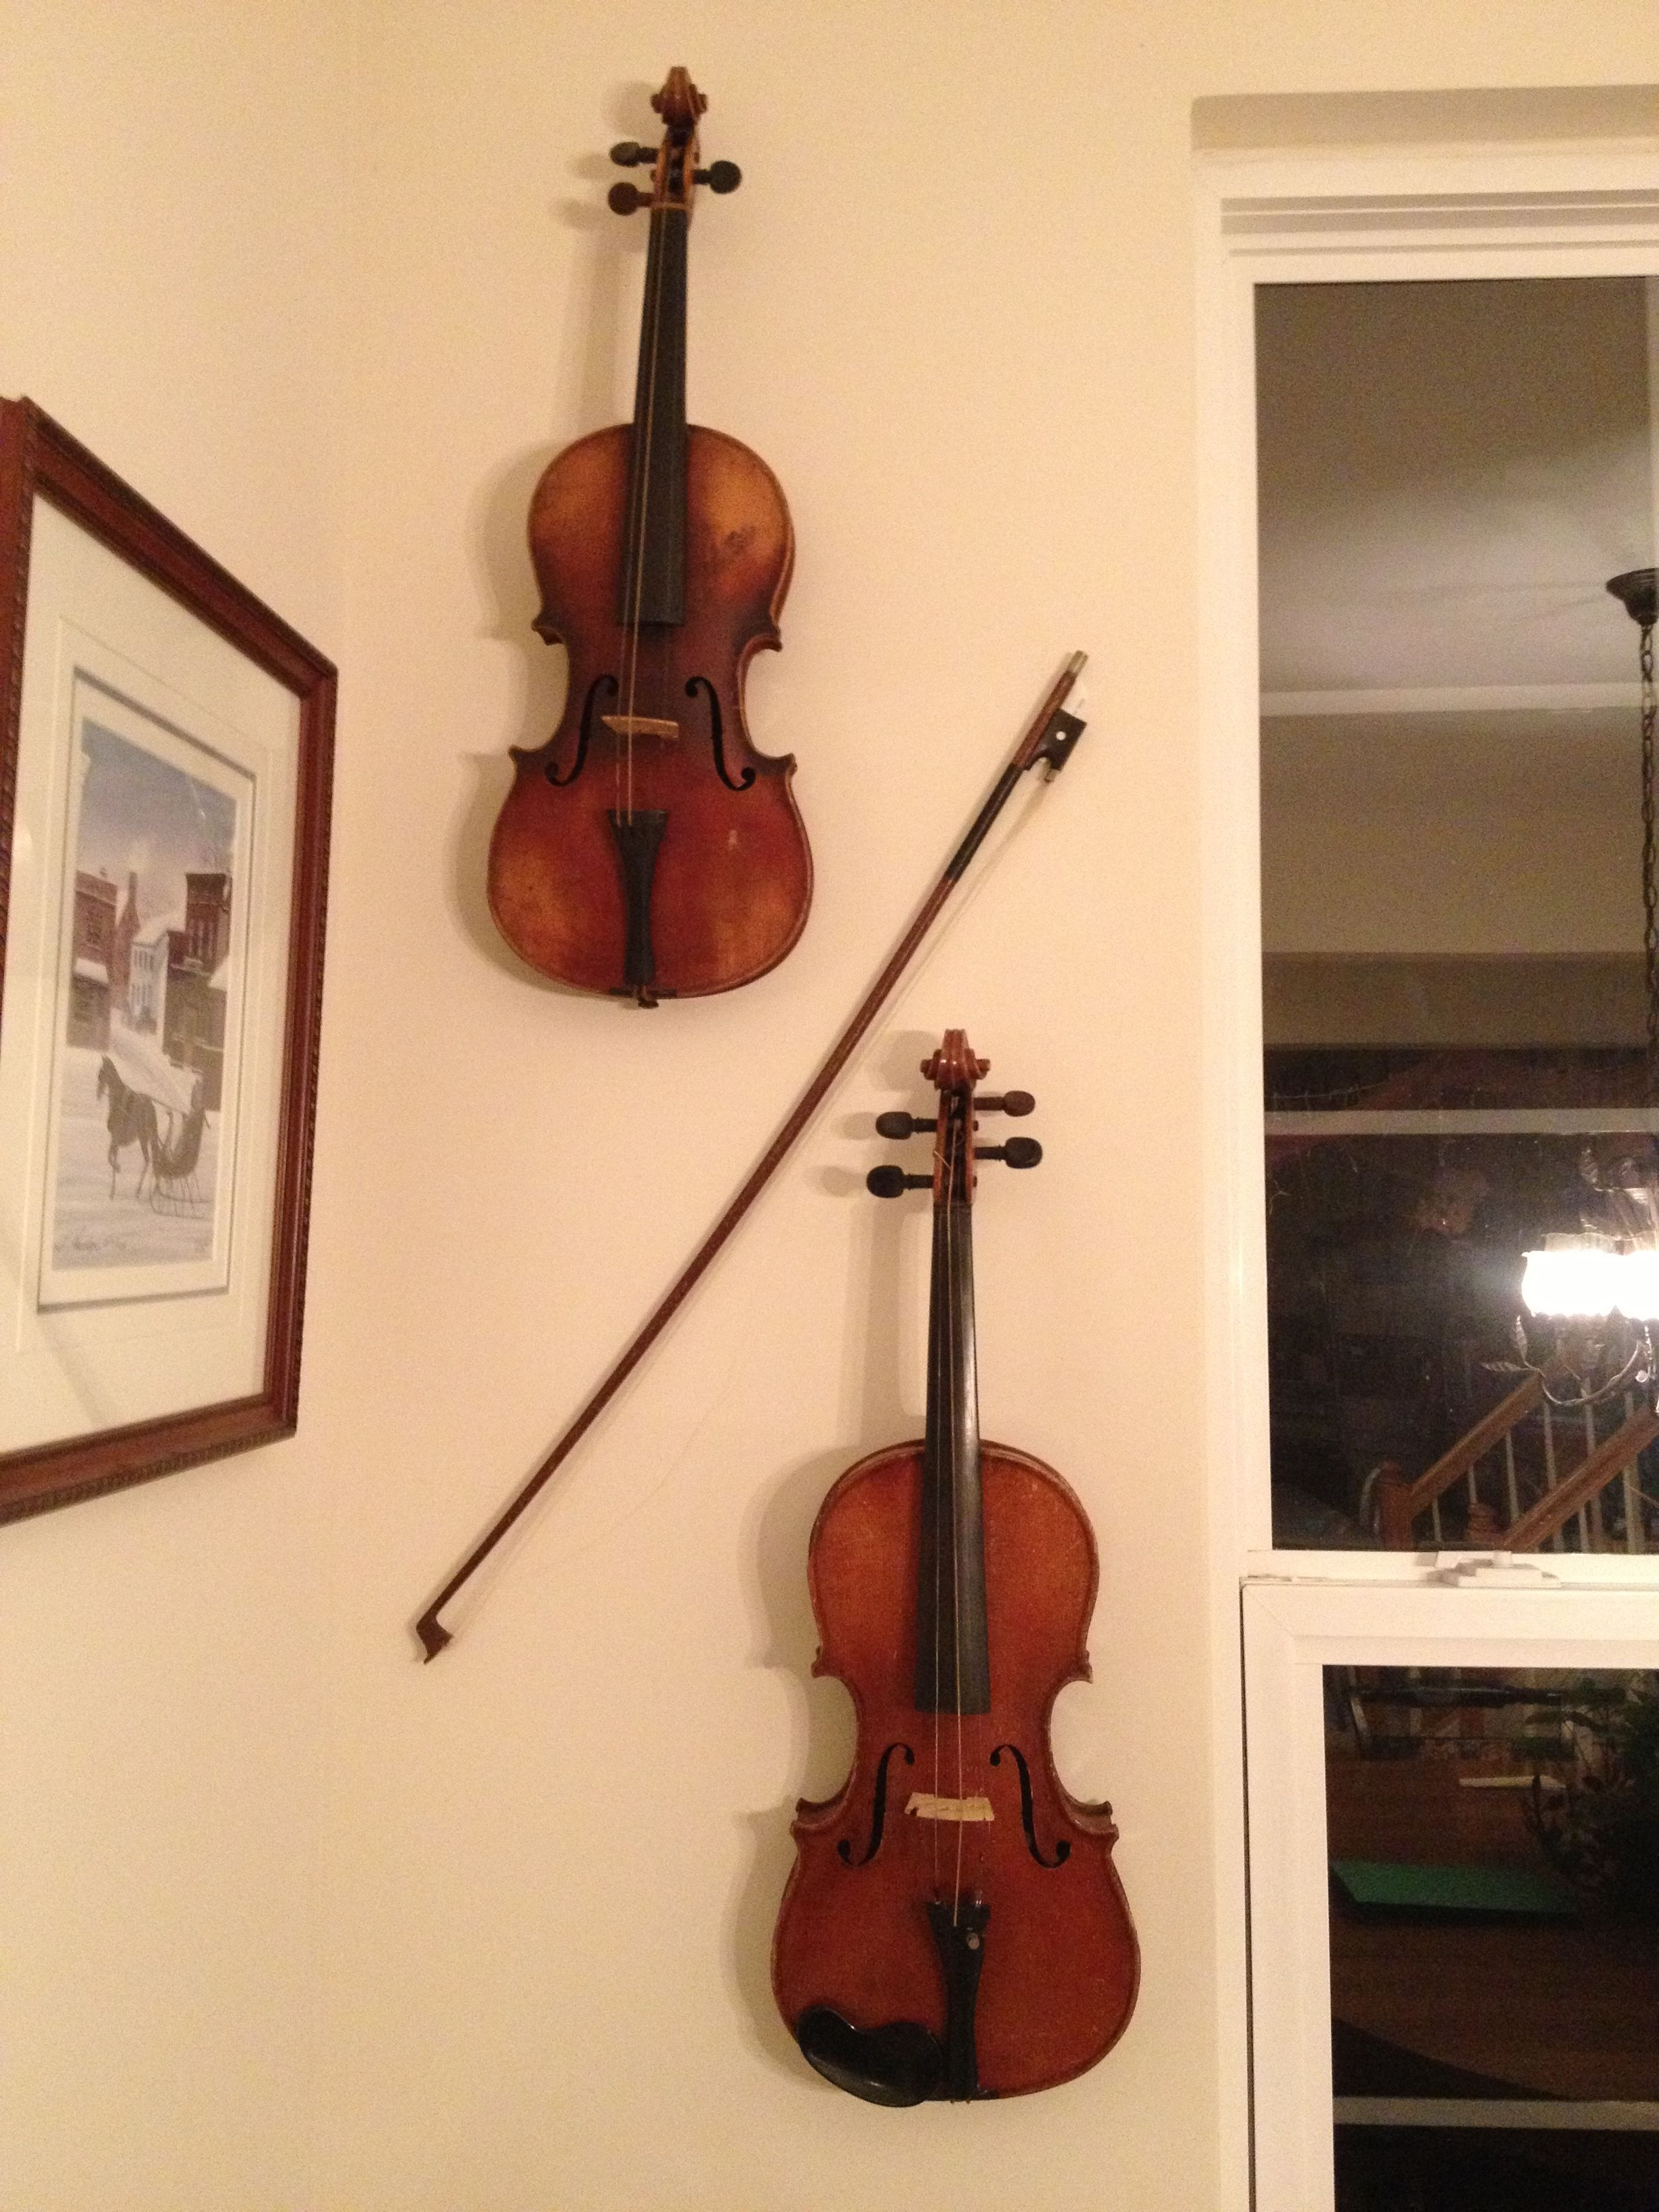 Grandma\'s violins hung on the dining room wall | My house projects ...